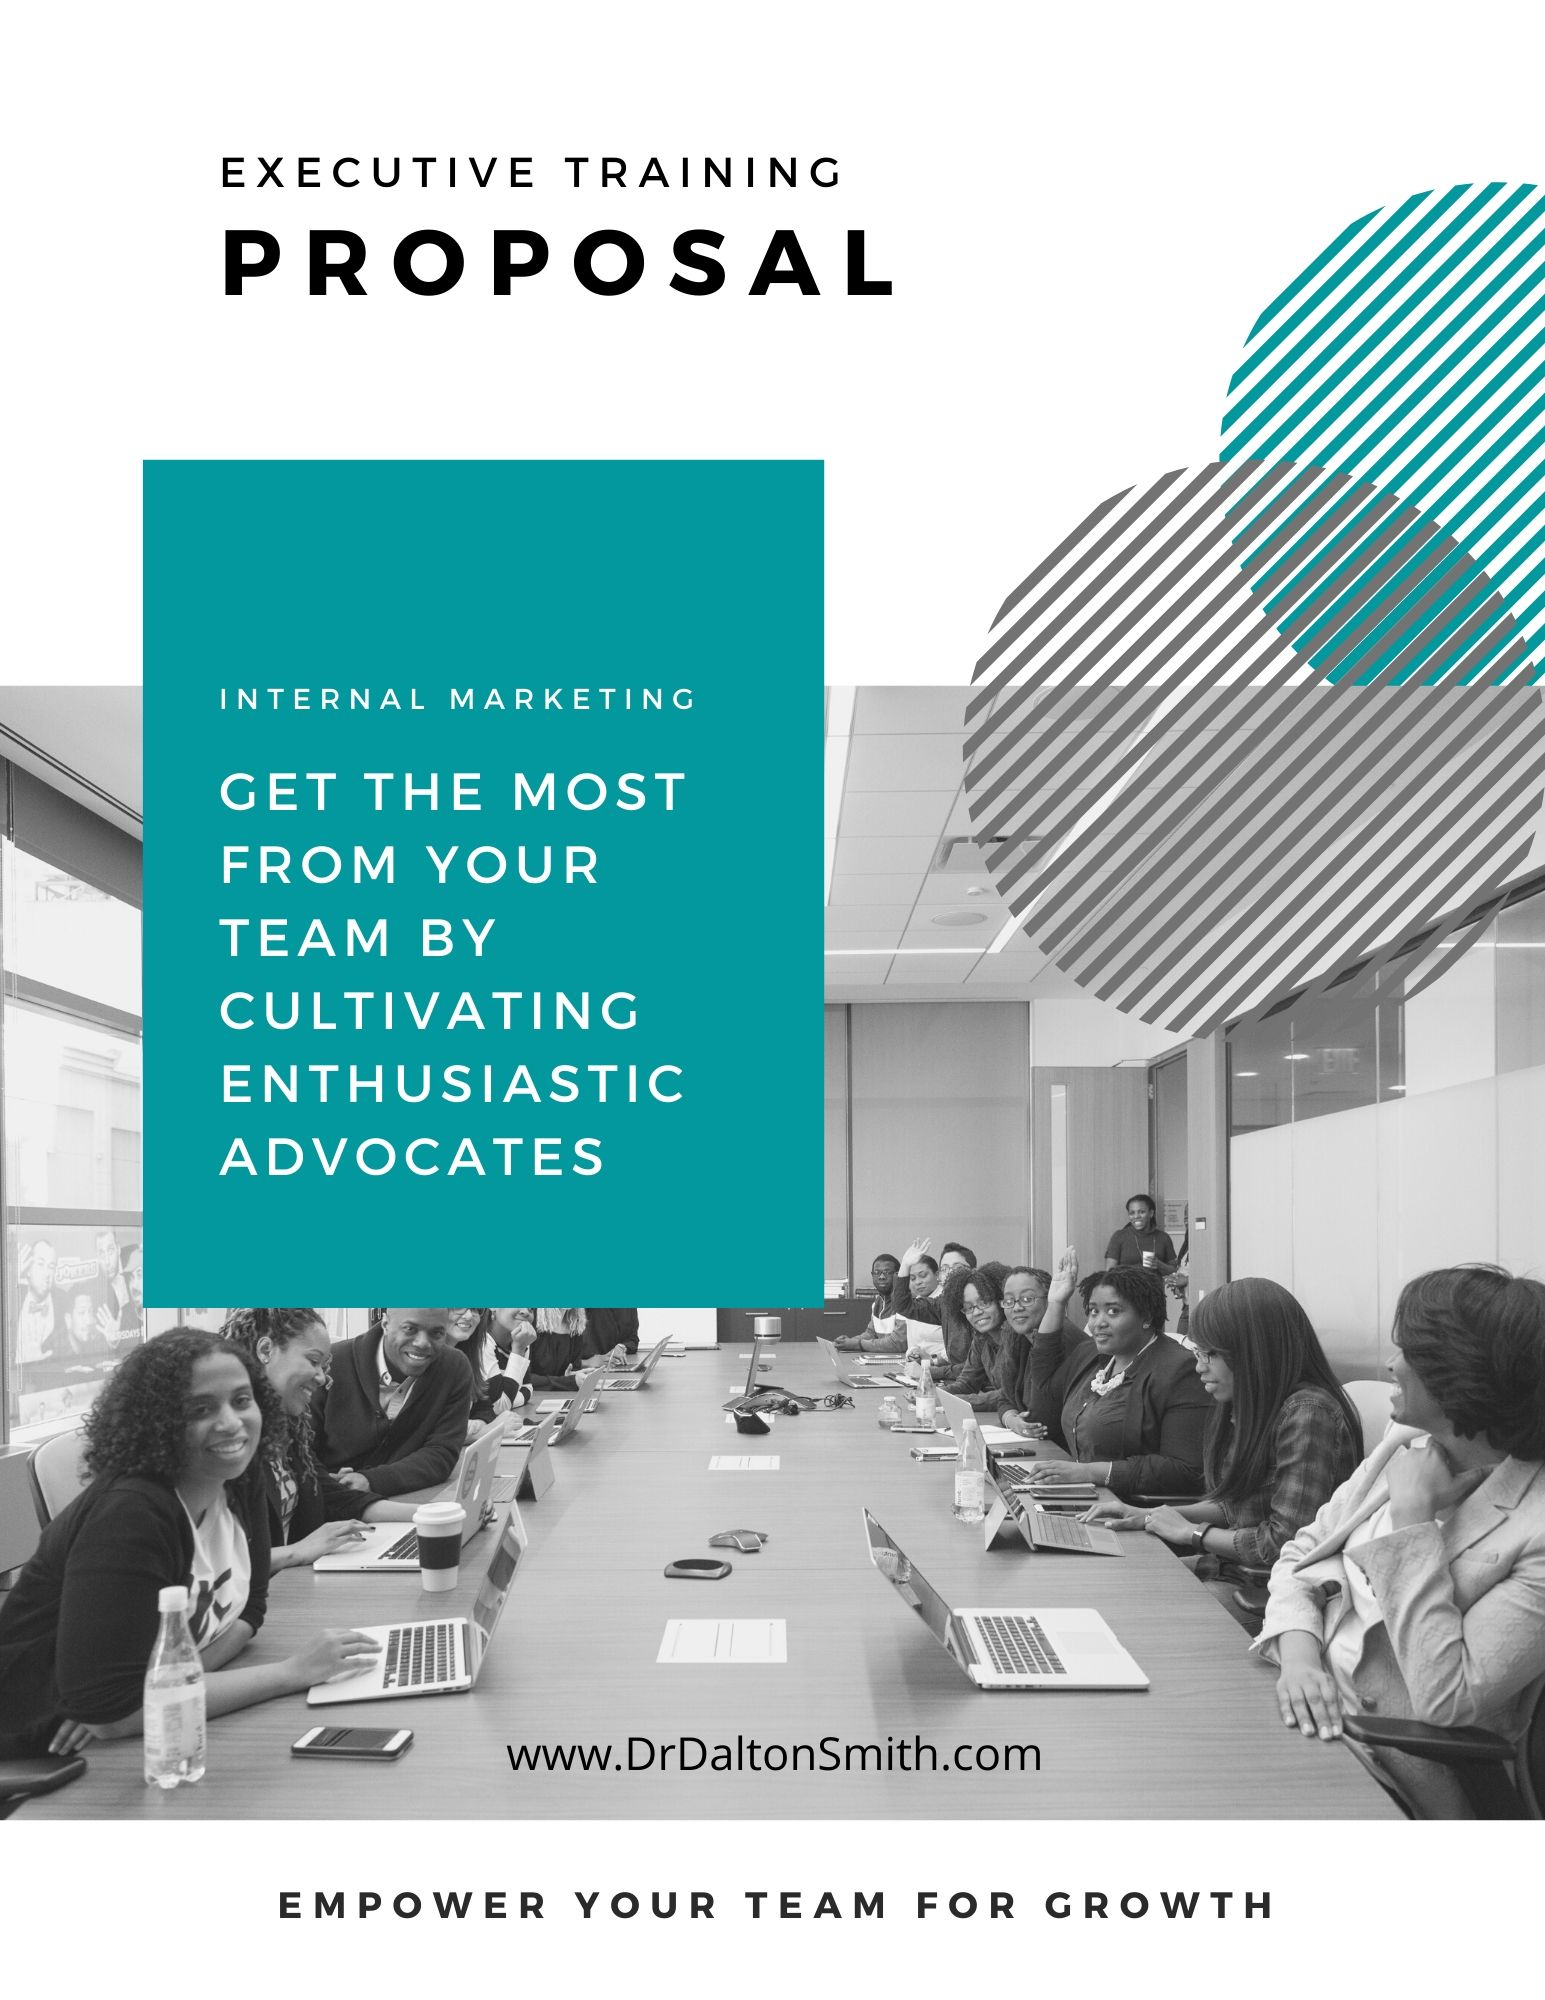 Getthe Most From Your Team by Cultivating Enthusiastic Advocates